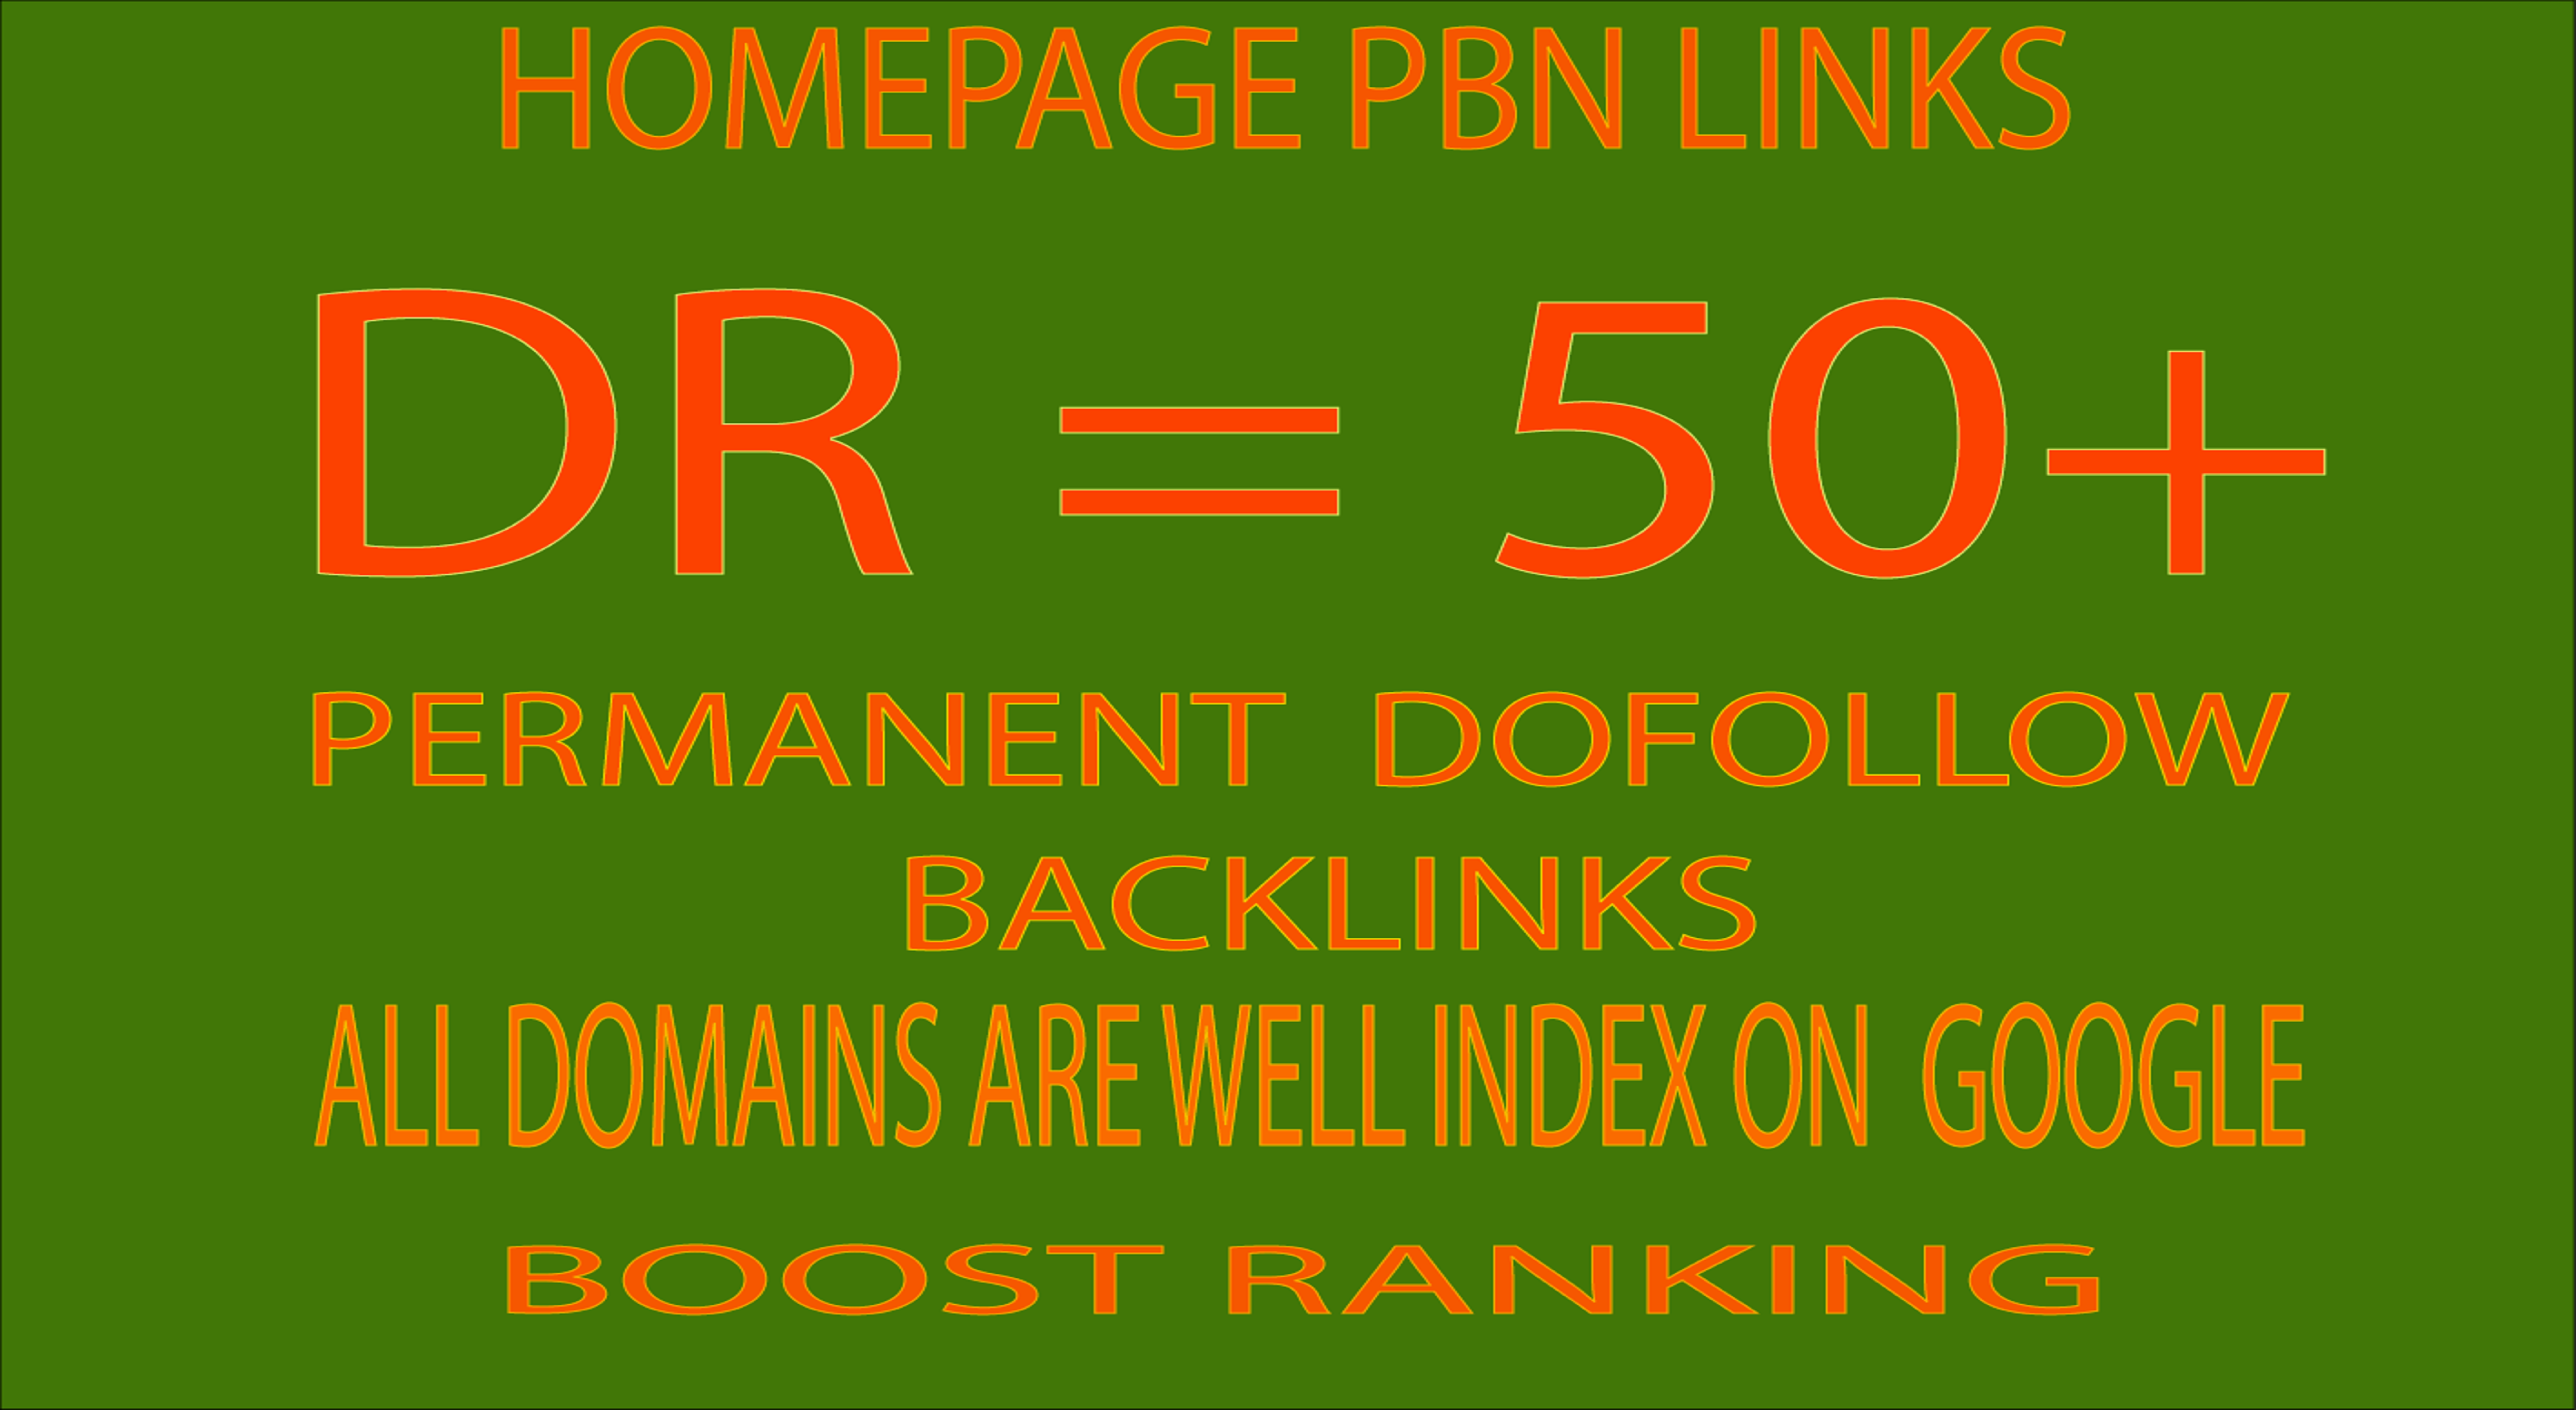 HIGH Quality DR 50 to 80 Homepage PBN Backlinks Manually Created DR 50 Plus PBN BACKLINKS from High